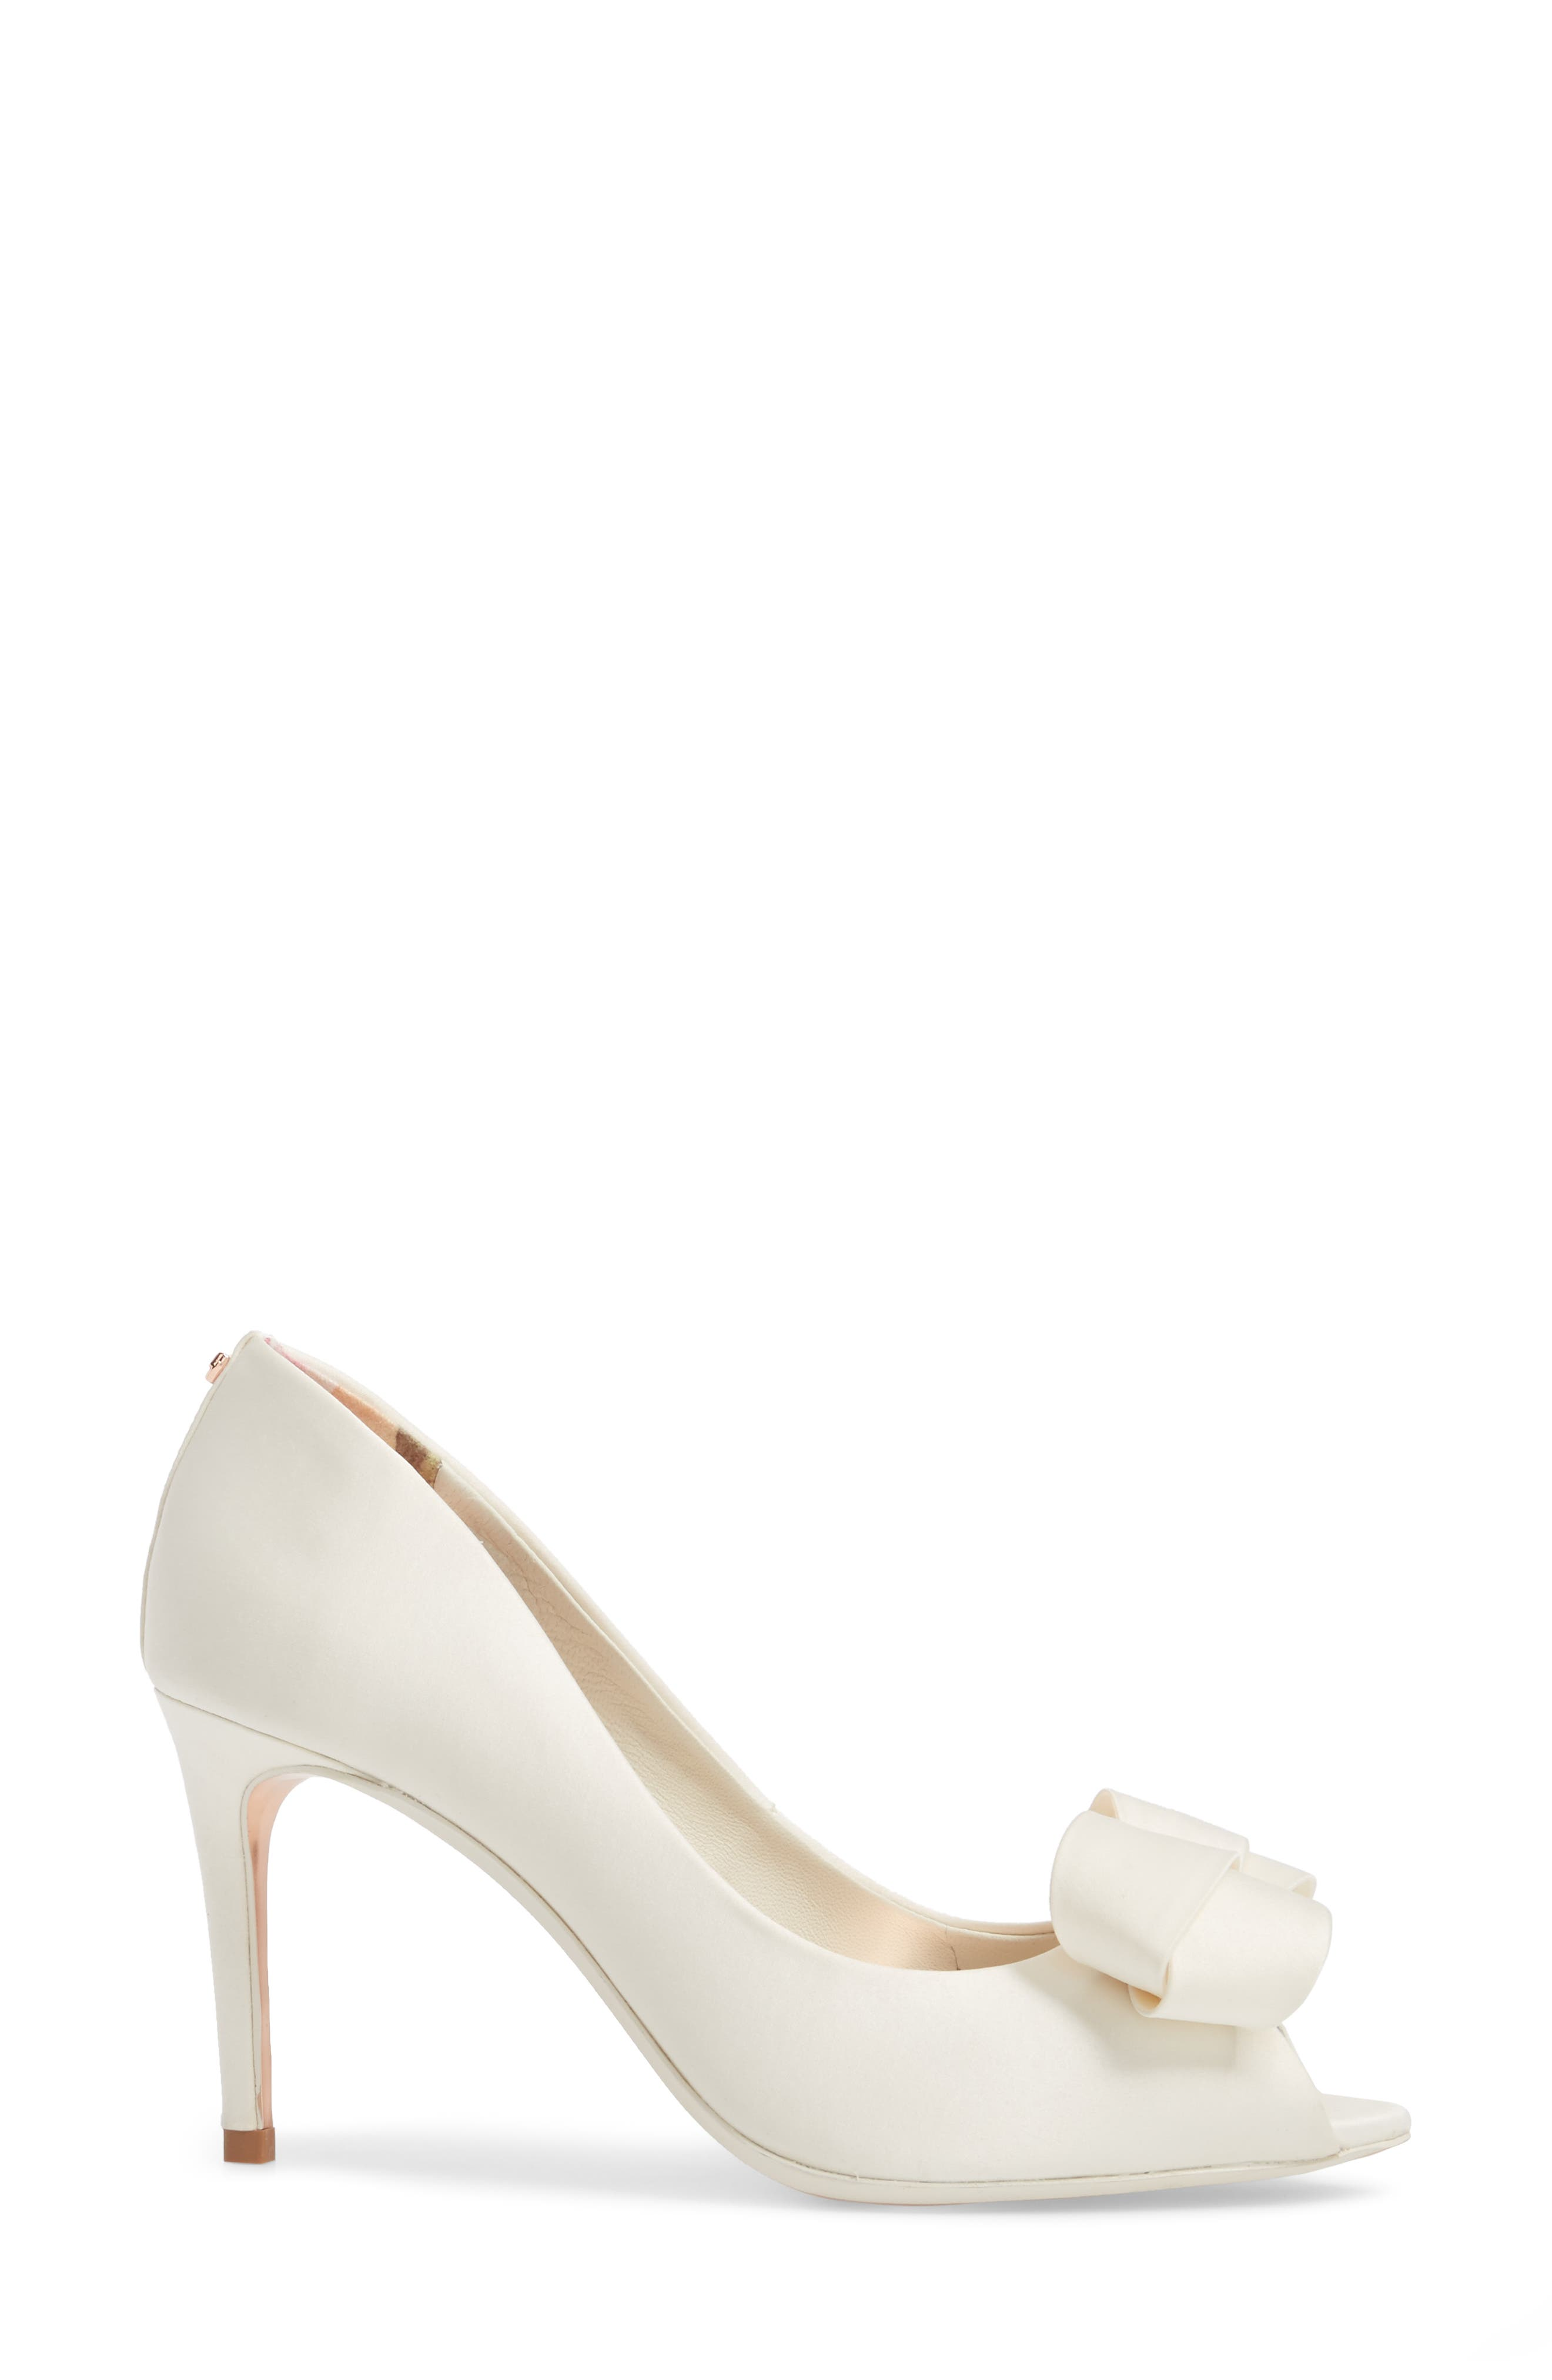 Alternate Image 3  - Ted Baker London Vylett Peep Toe Pump (Women)